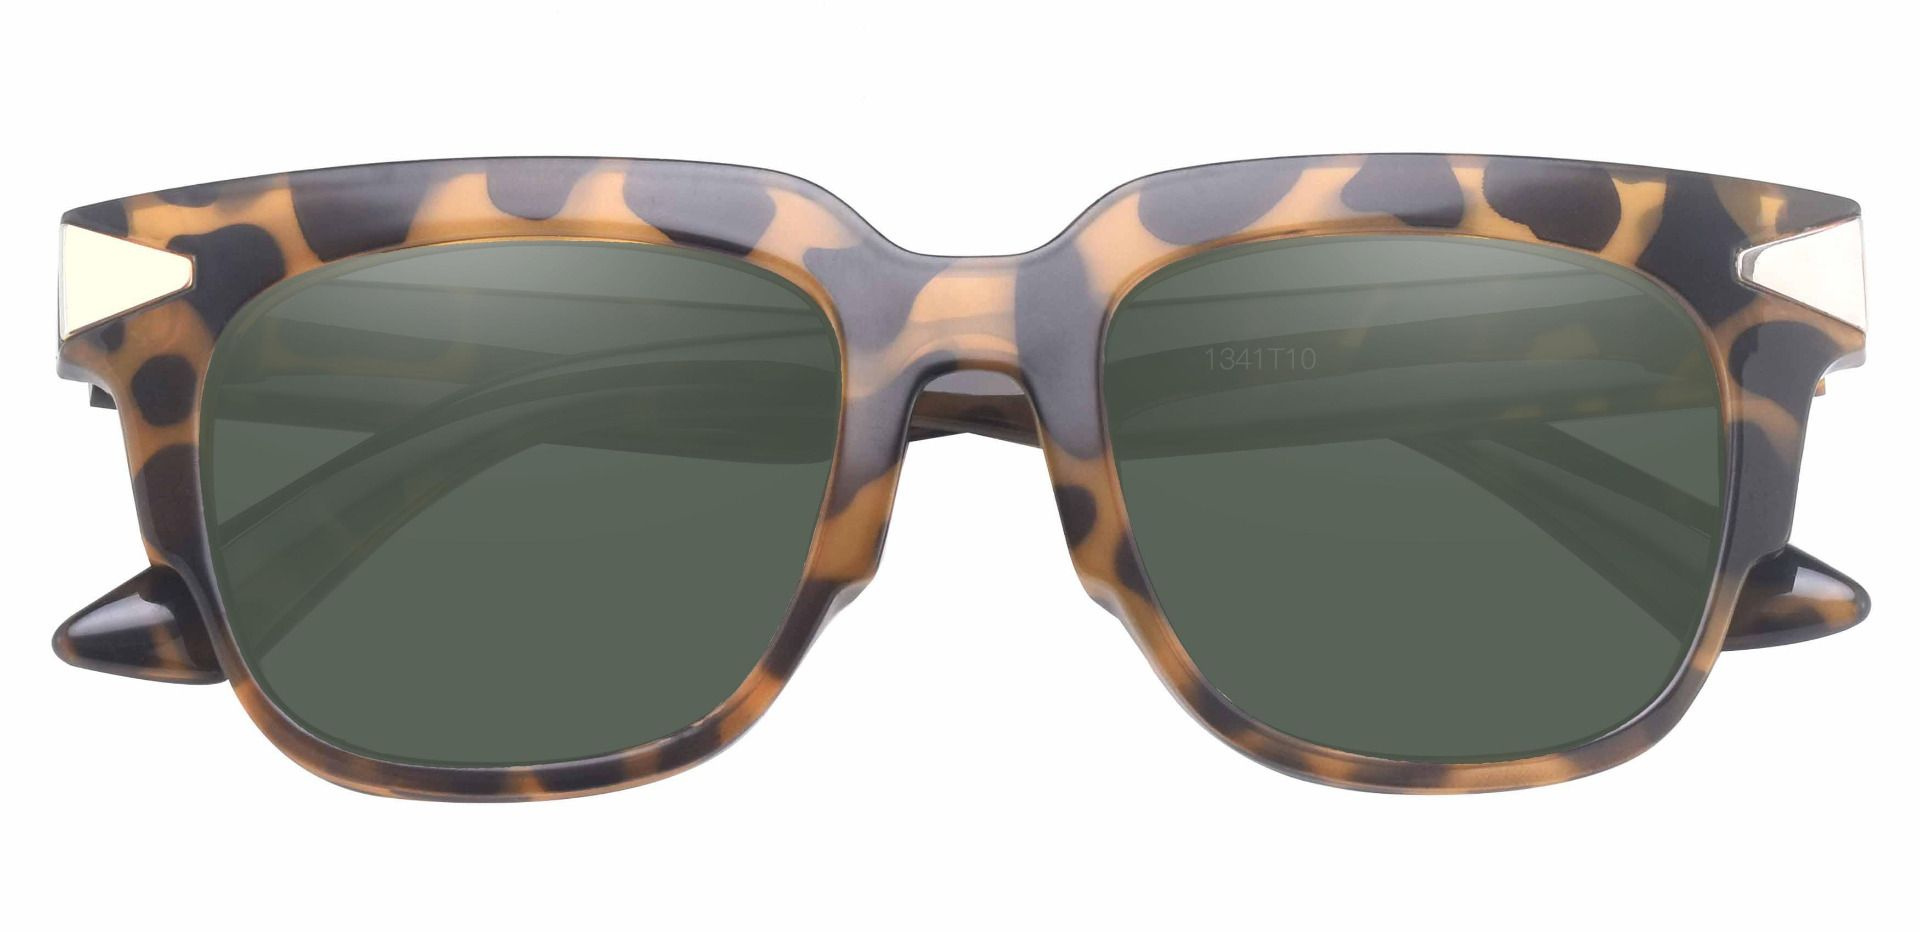 Ardent Square Non-Rx Sunglasses - Tortoise Frame With Green Lenses